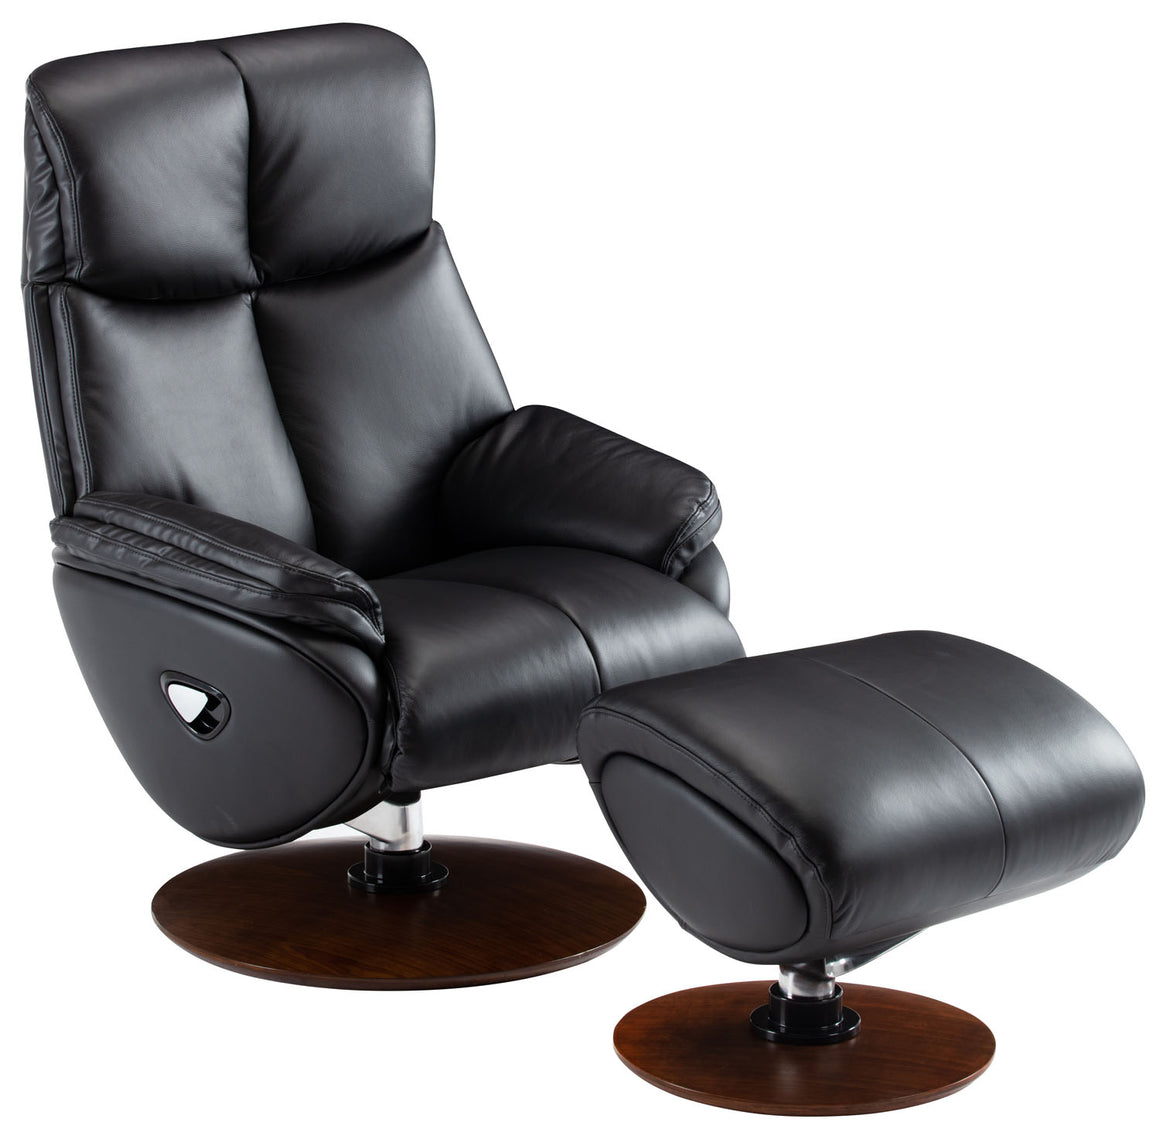 Barcalounger Alicia Leather Recliner and Ottoman with Adjustable Headrest